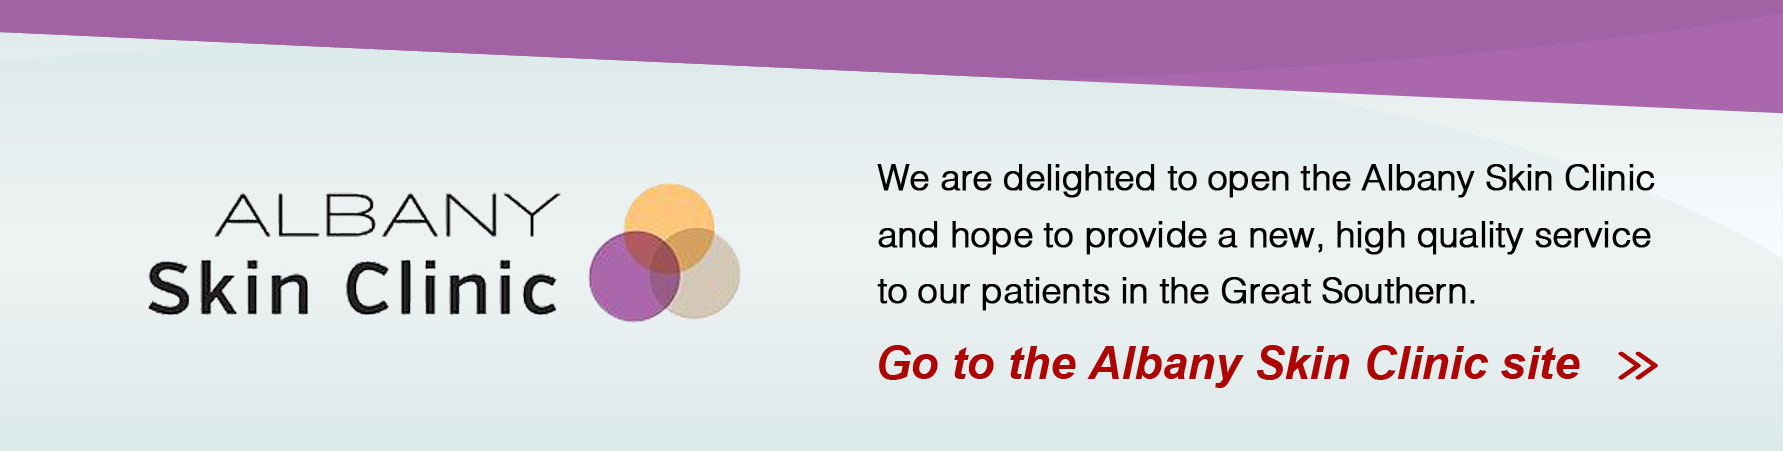 Pioneer Health Albany - Medical Surgery Albany, Doctors, General